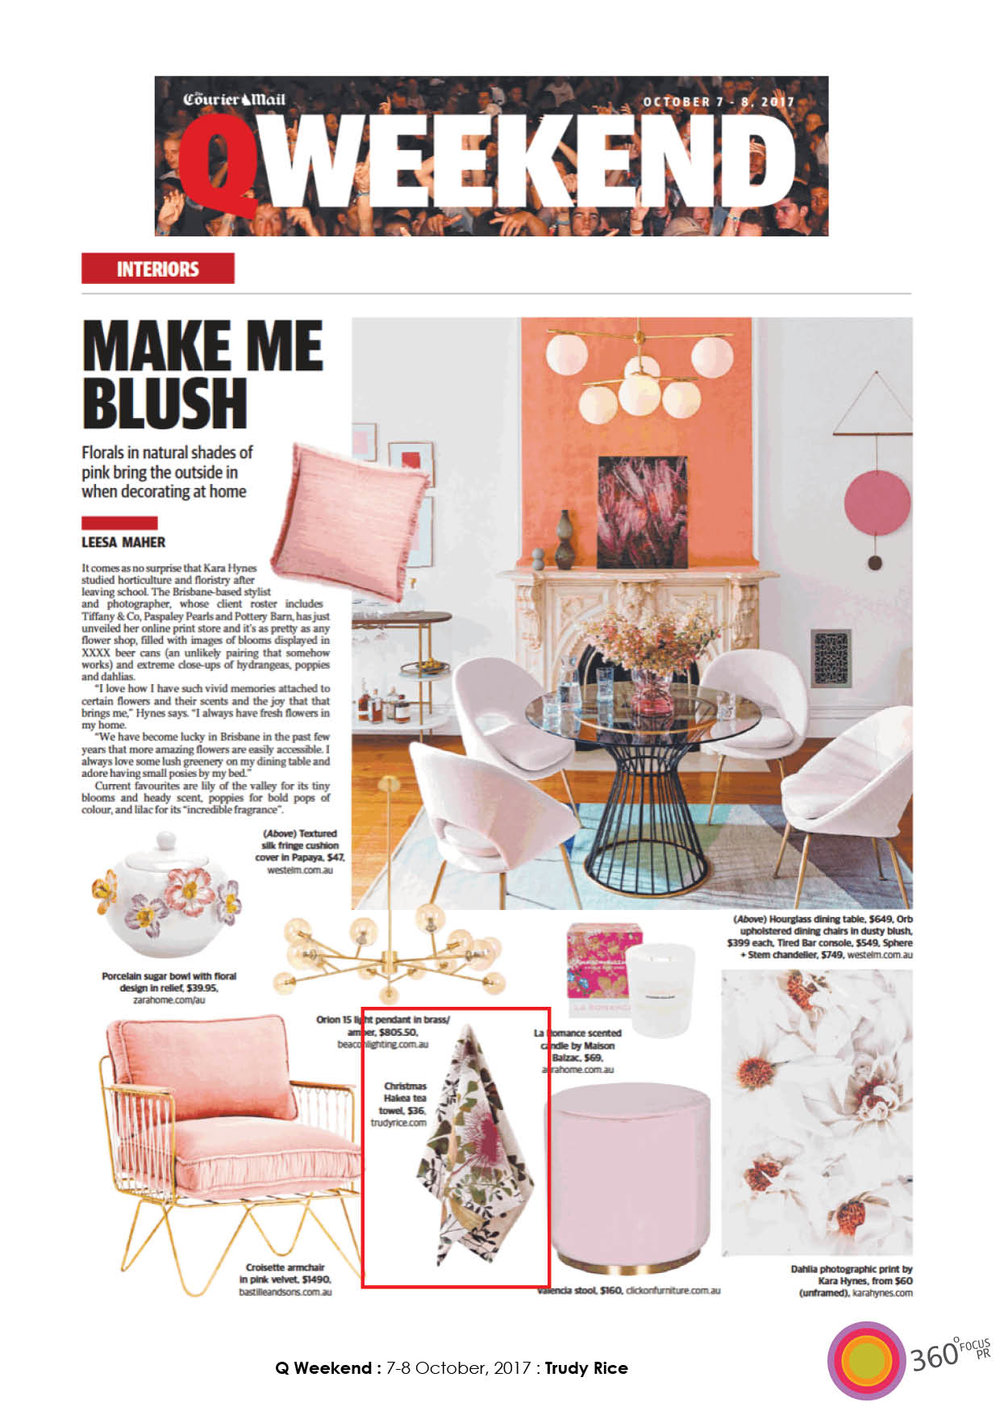 Courier Mail QWeekend - October 2017